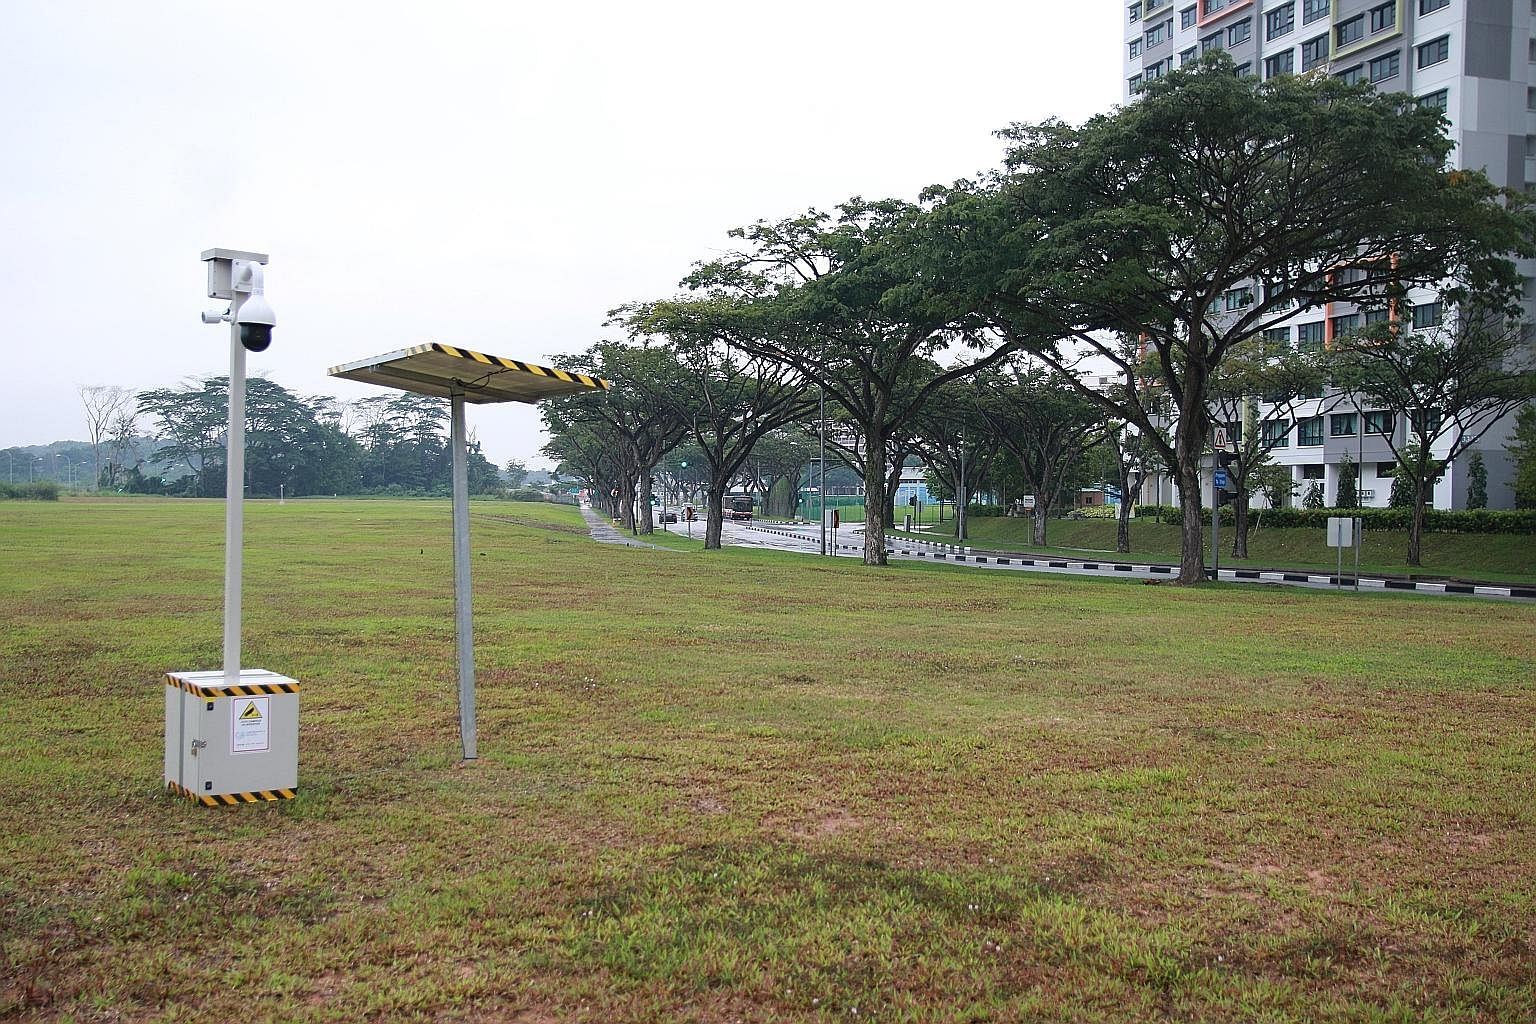 Ms Janet Sum, founder of Facebook group Yishun 326 Tabby Cat, said she knows of five adult dogs and two puppies that frequent the open field between Yishun Avenues 6 and 8.